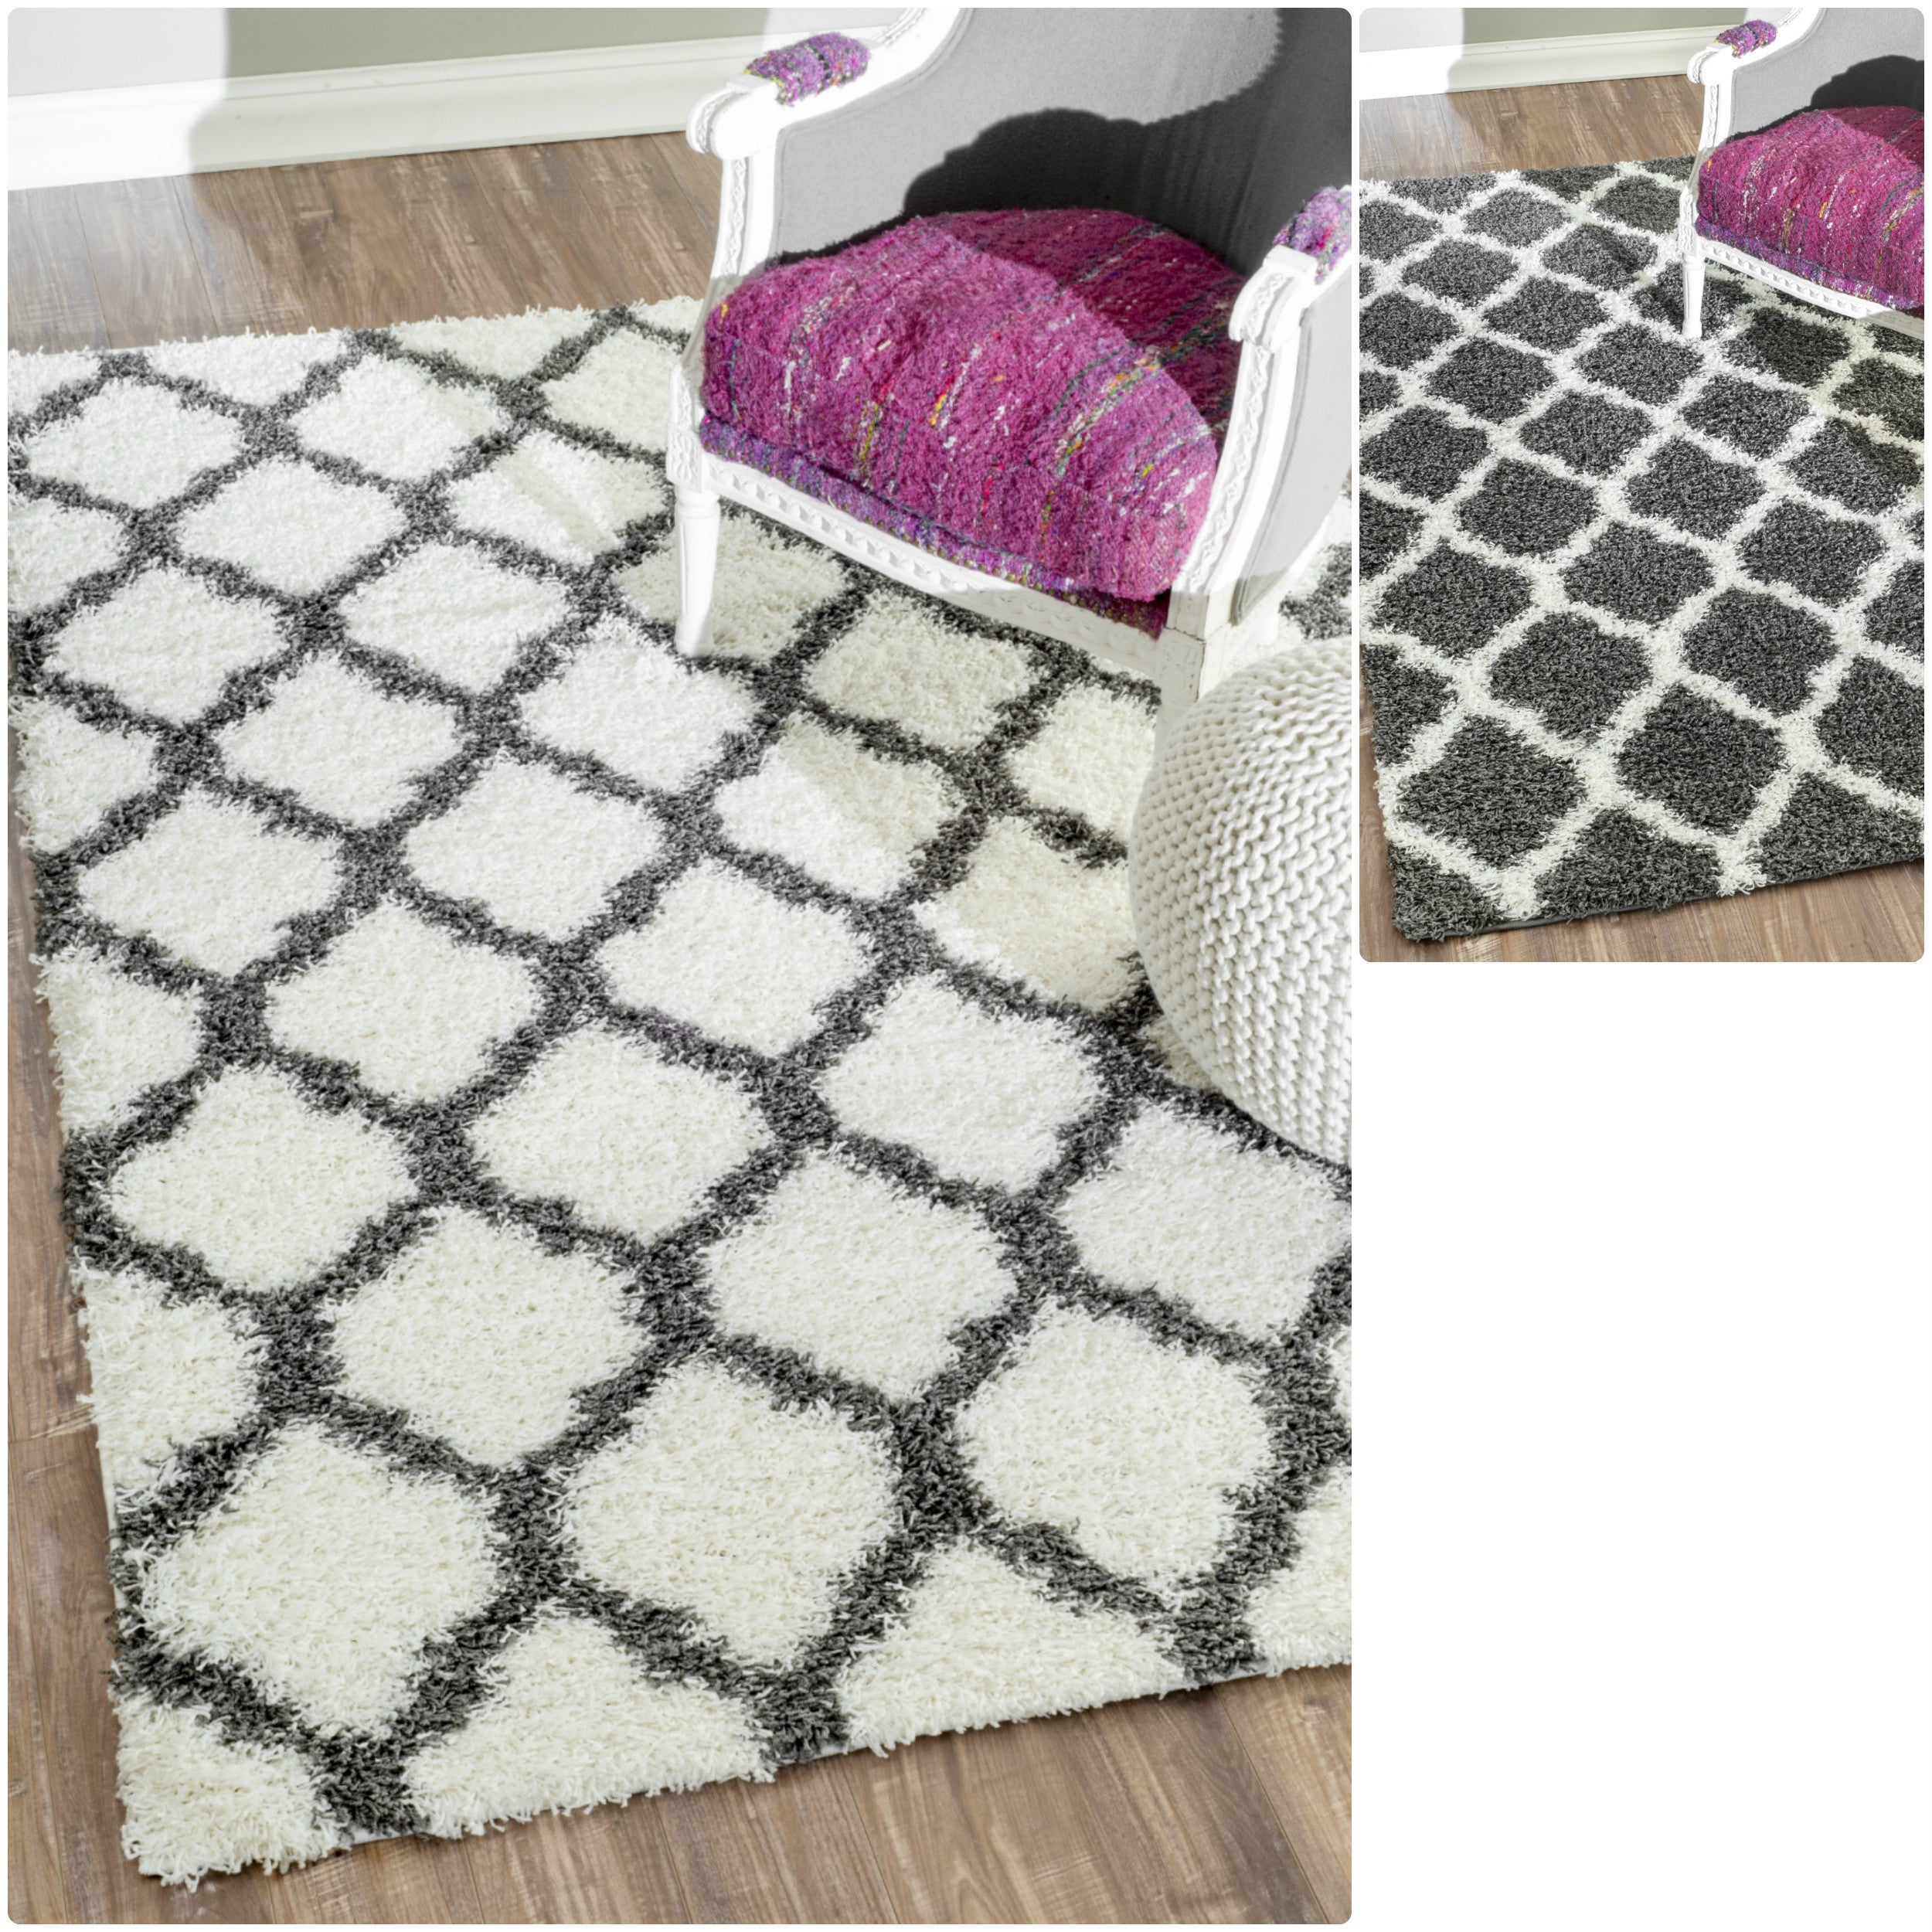 nuLOOM Alexa My Soft and Plush Modern Trellis Shag Rug (5'3 x 7'6) at Sears.com